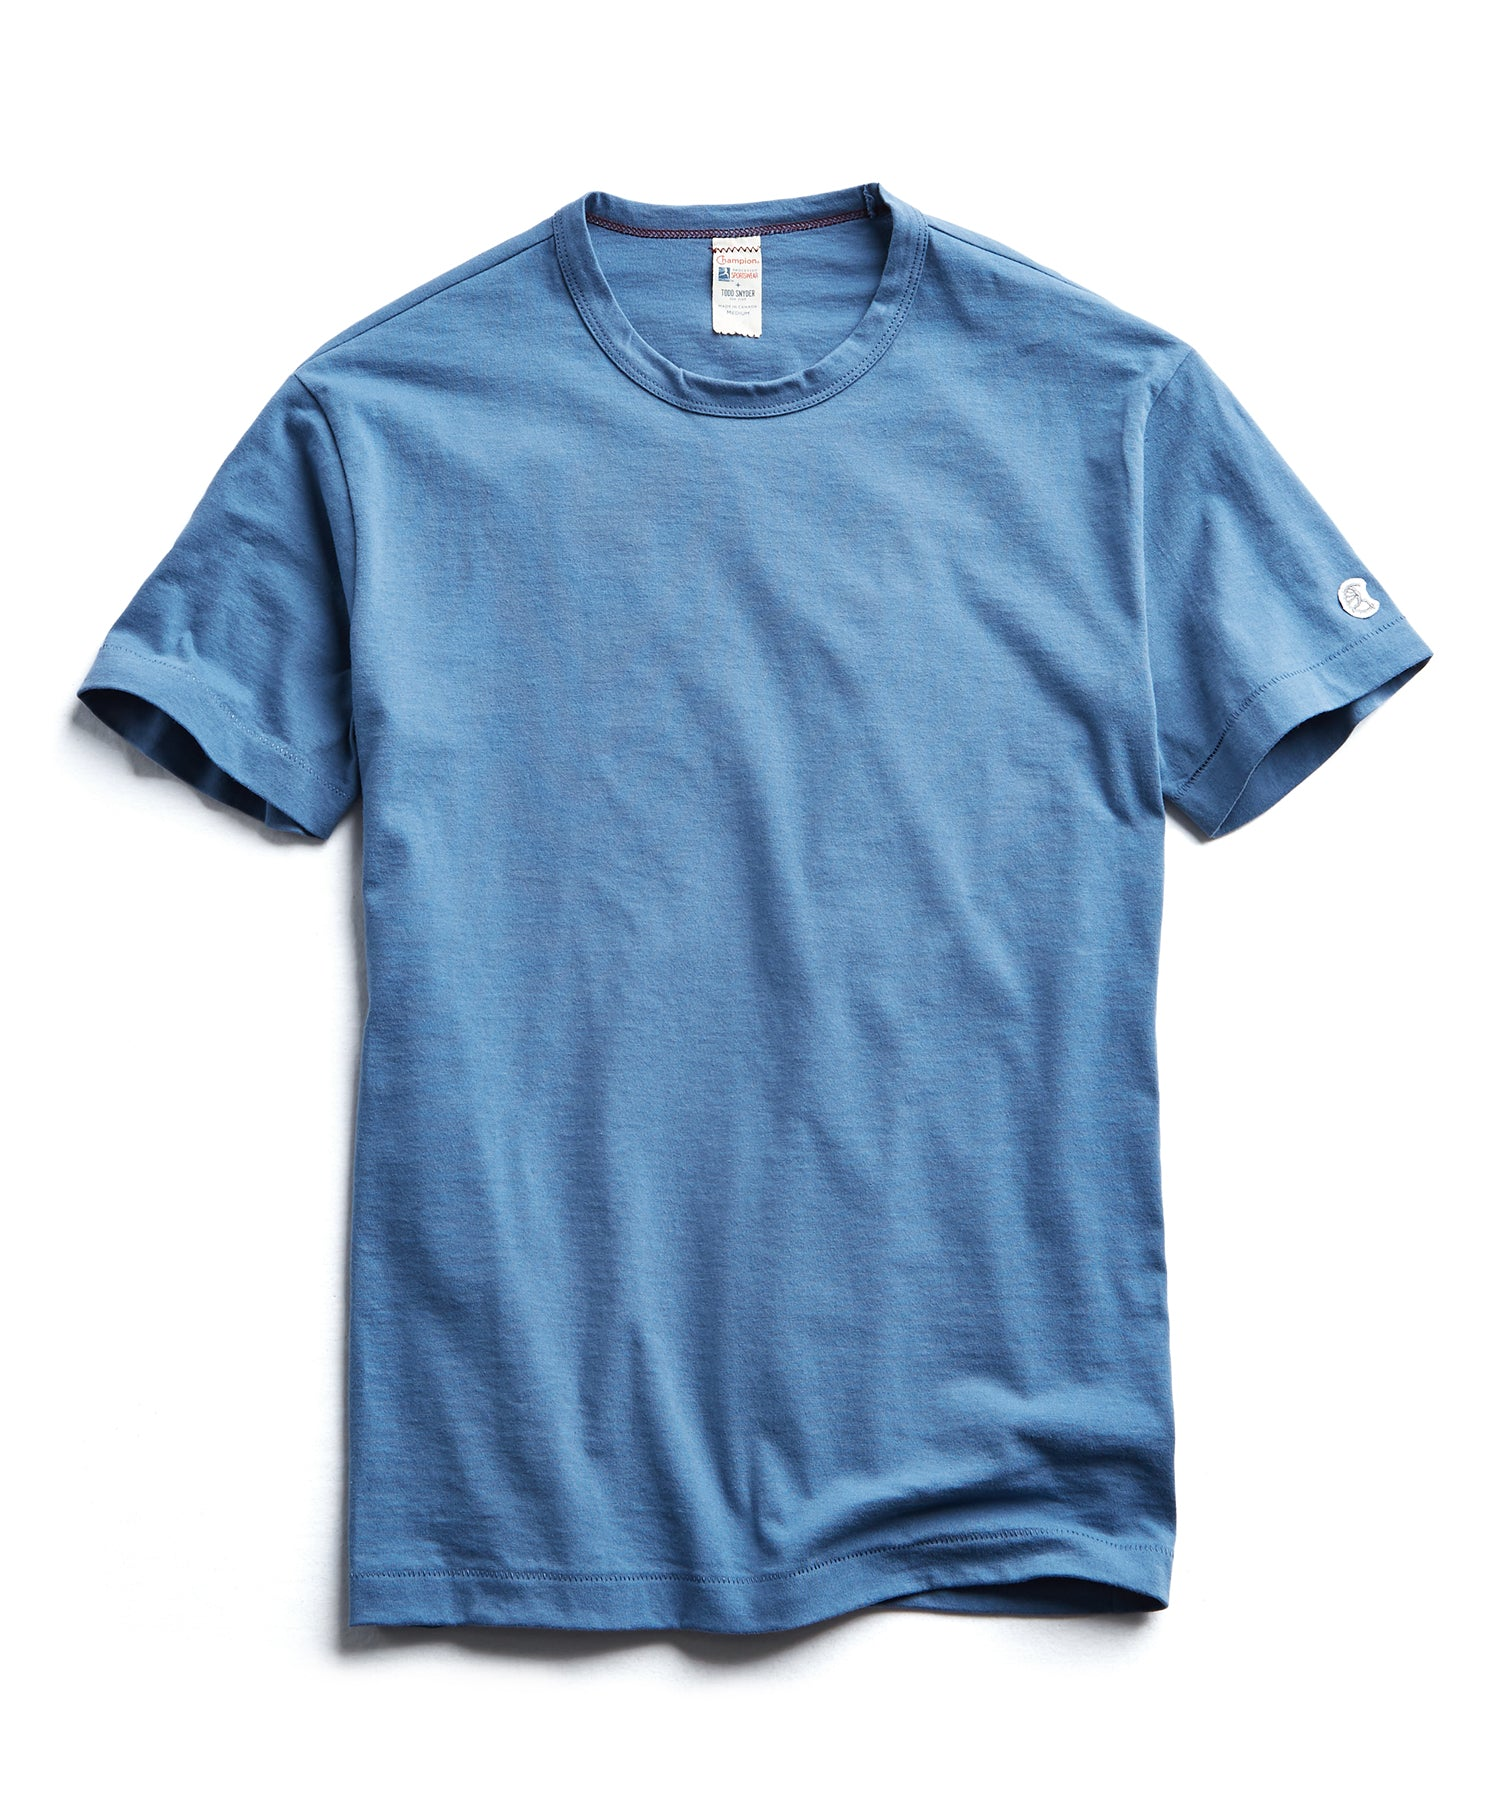 Champion Basic Jersey Tee in Blue Grotto